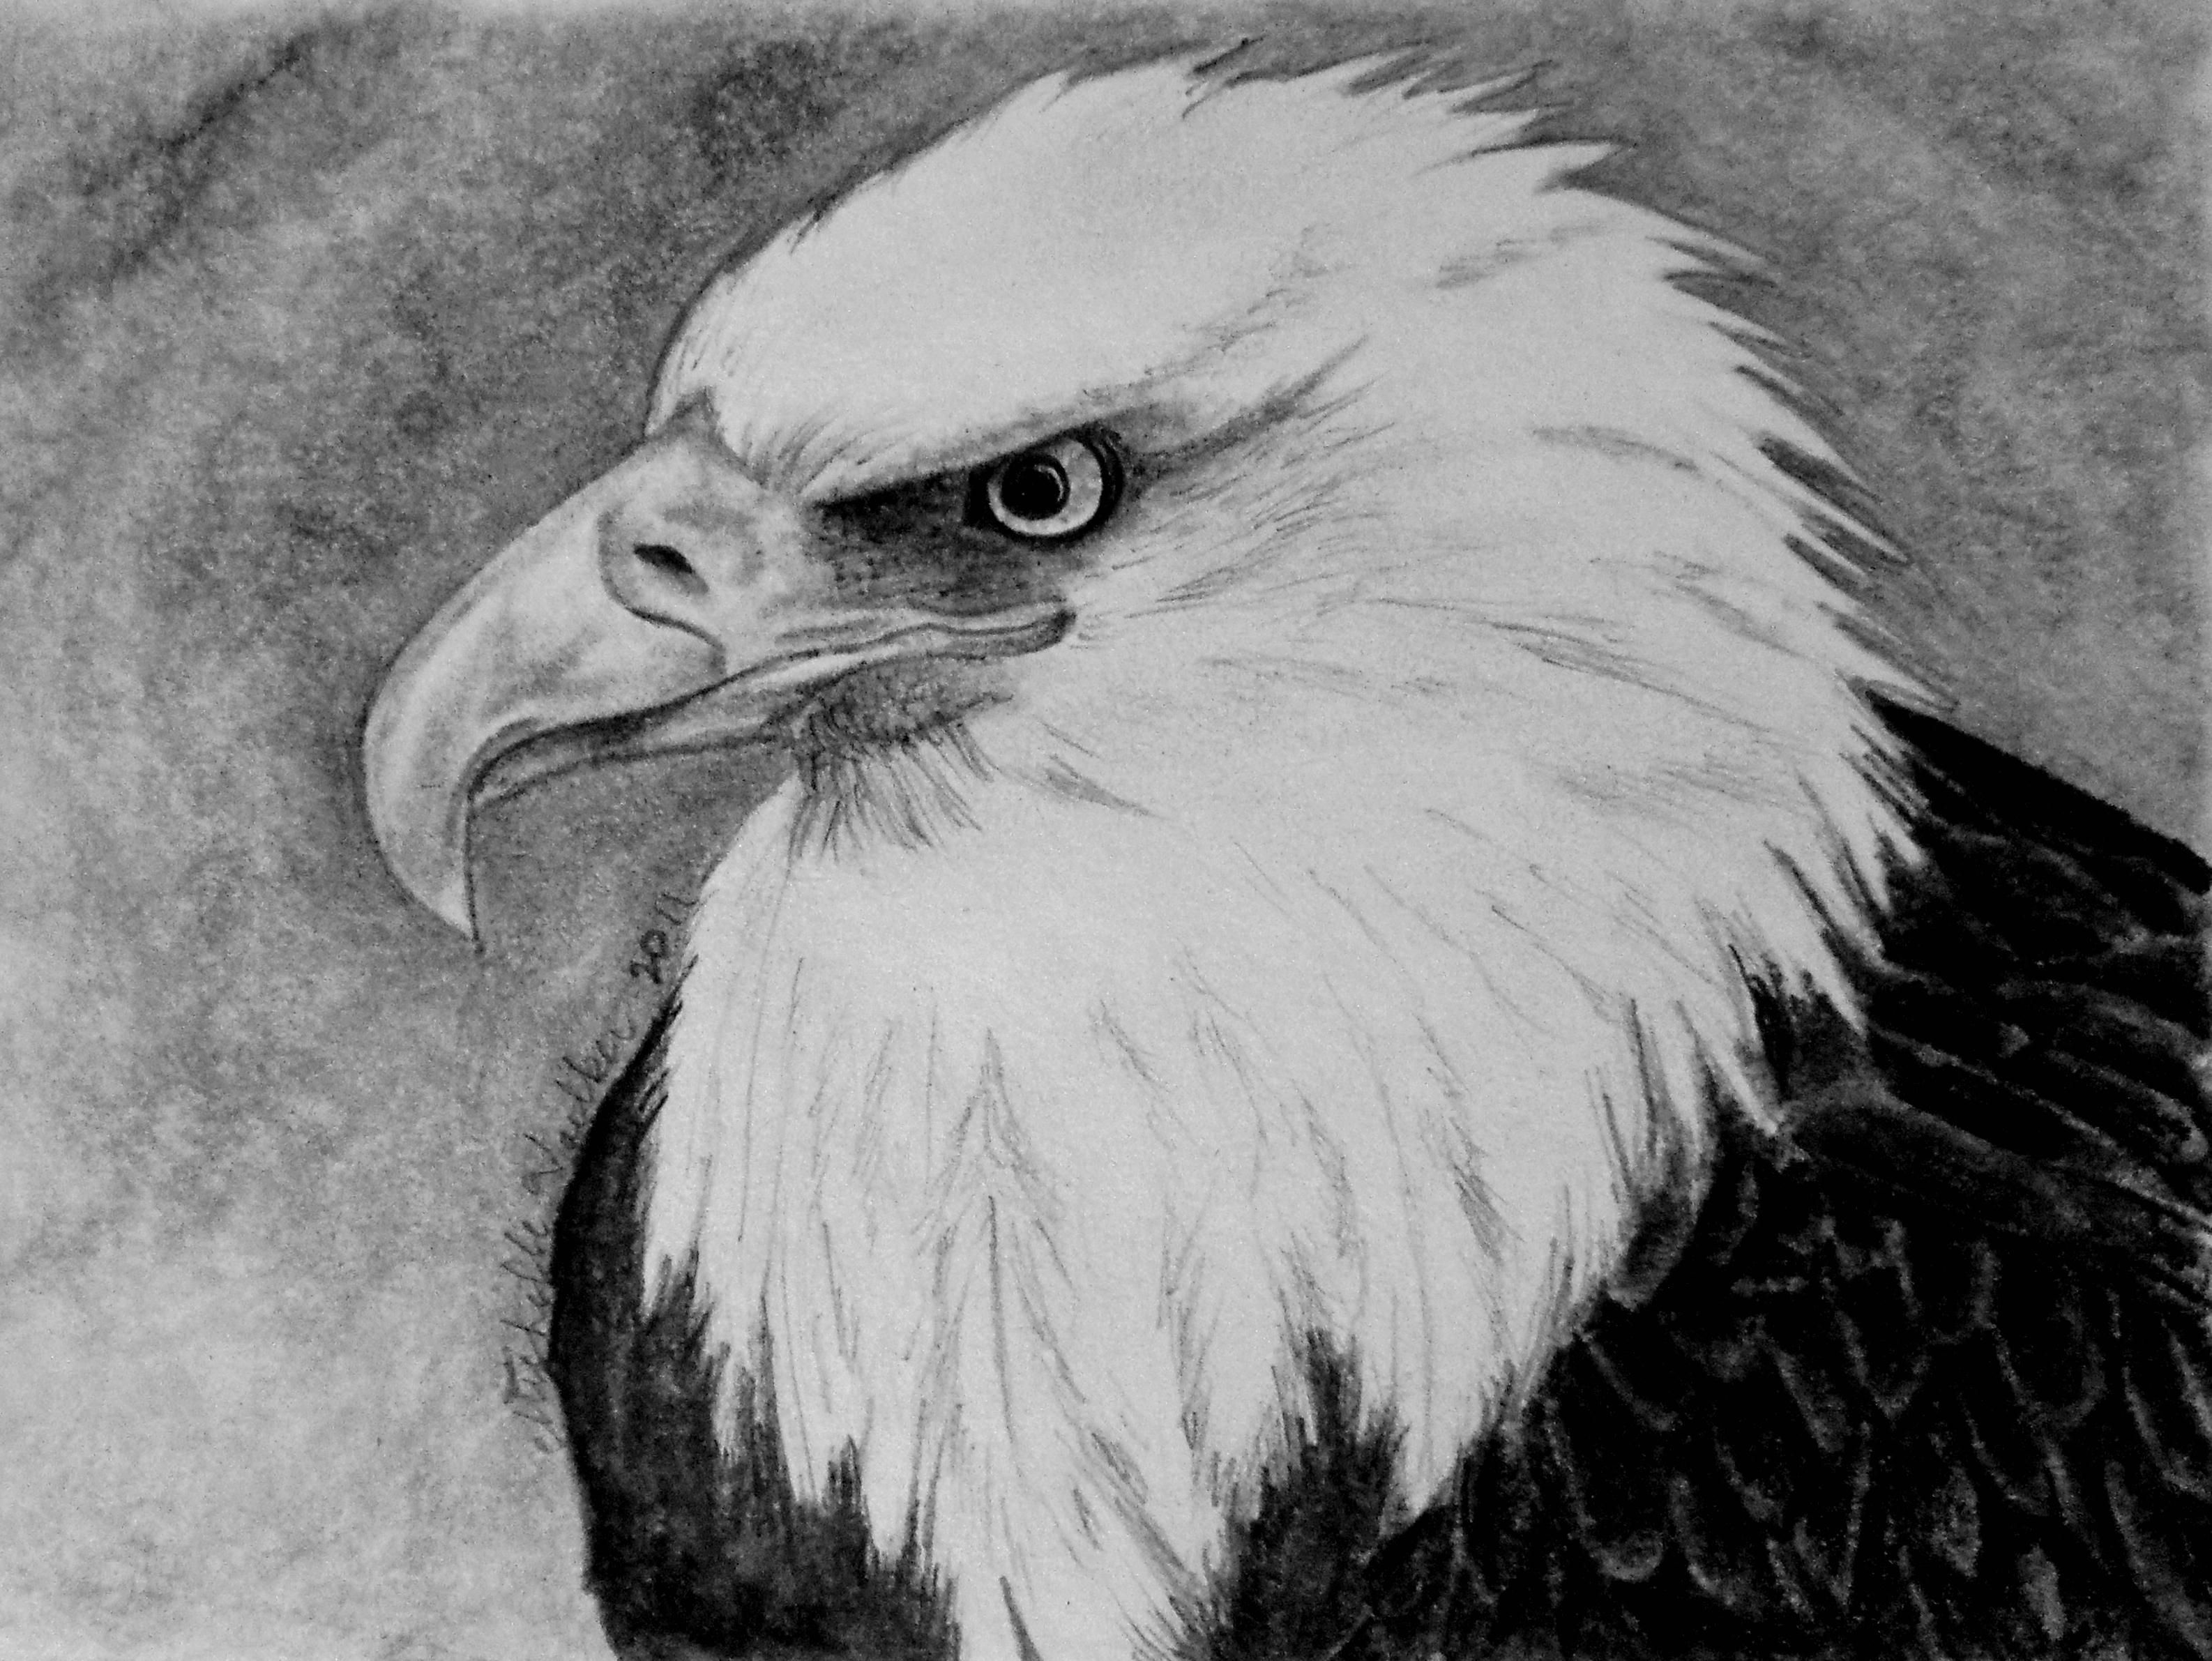 Eagle pencil drawing eagle drawing my drawings pencil drawings bald eagle sketching